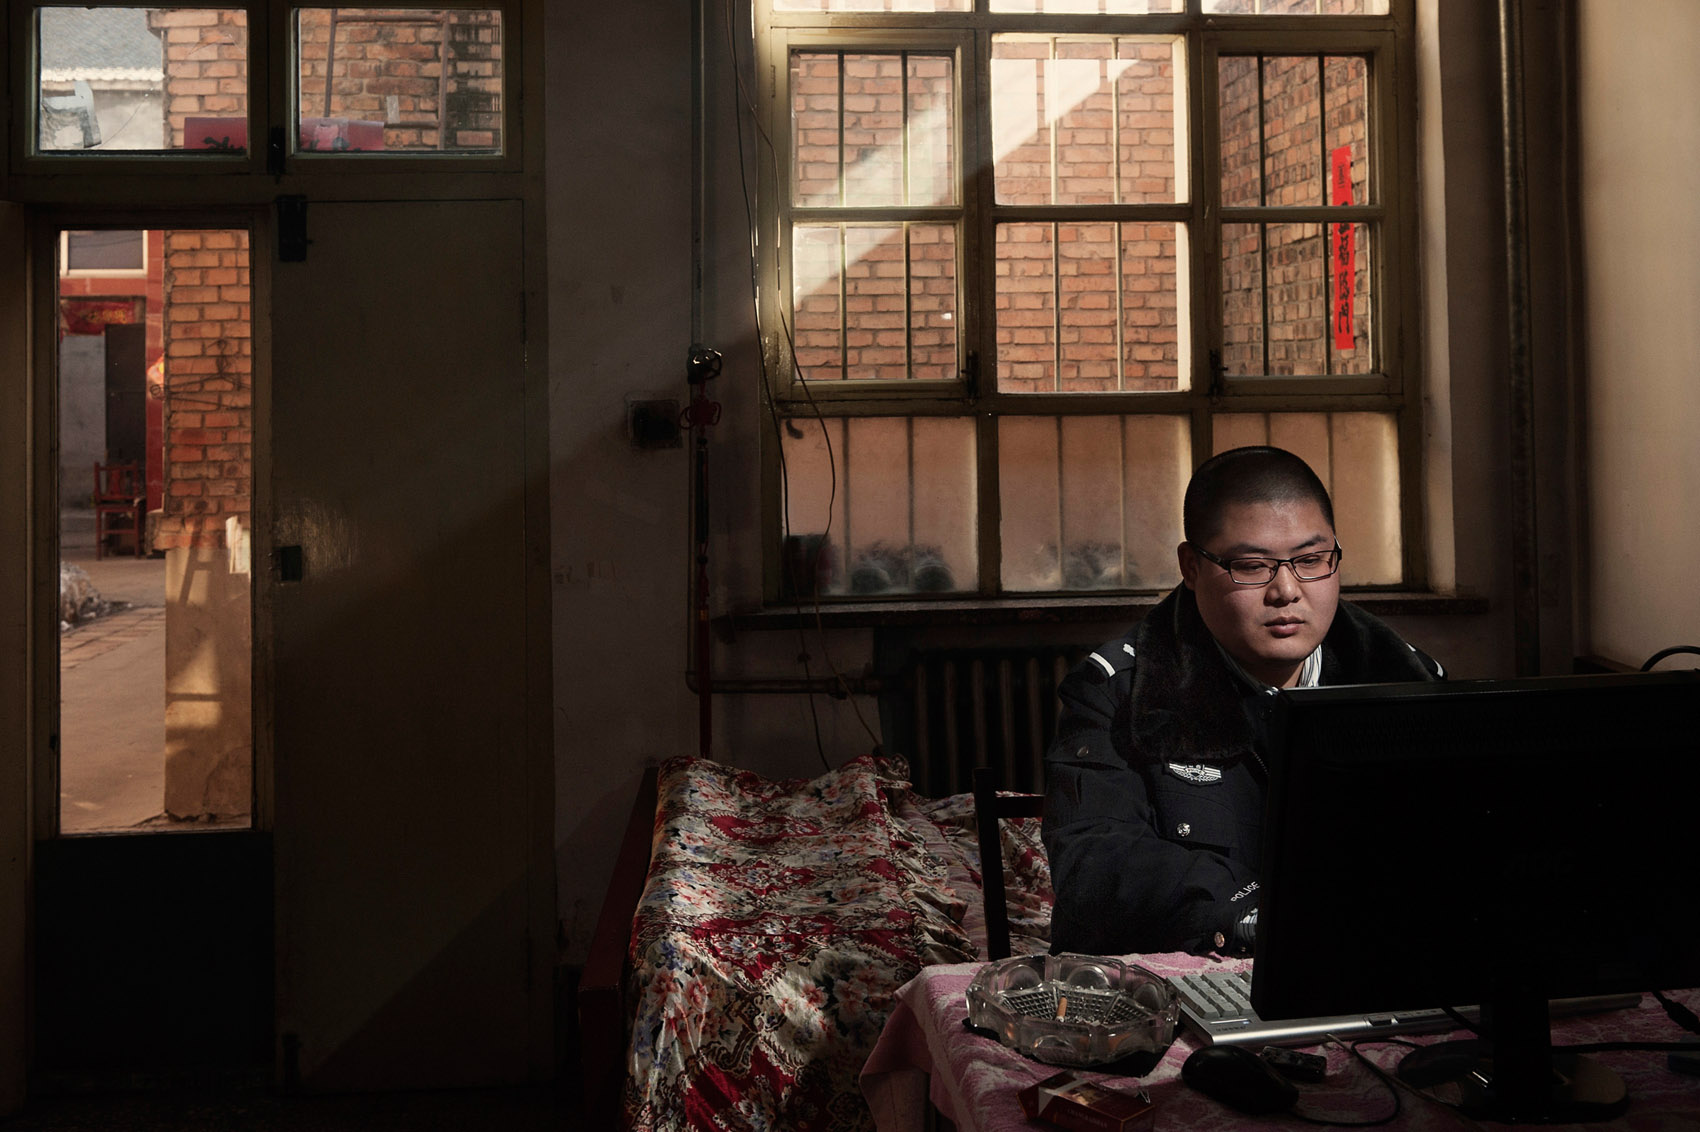 Xiangyuan (Shanxi) January 24, 2012.Li Ke a prolific author of online novels, in his room where he spends hours every day writing. Li runs a double life: policeman during the day and writer when he is not on duty.